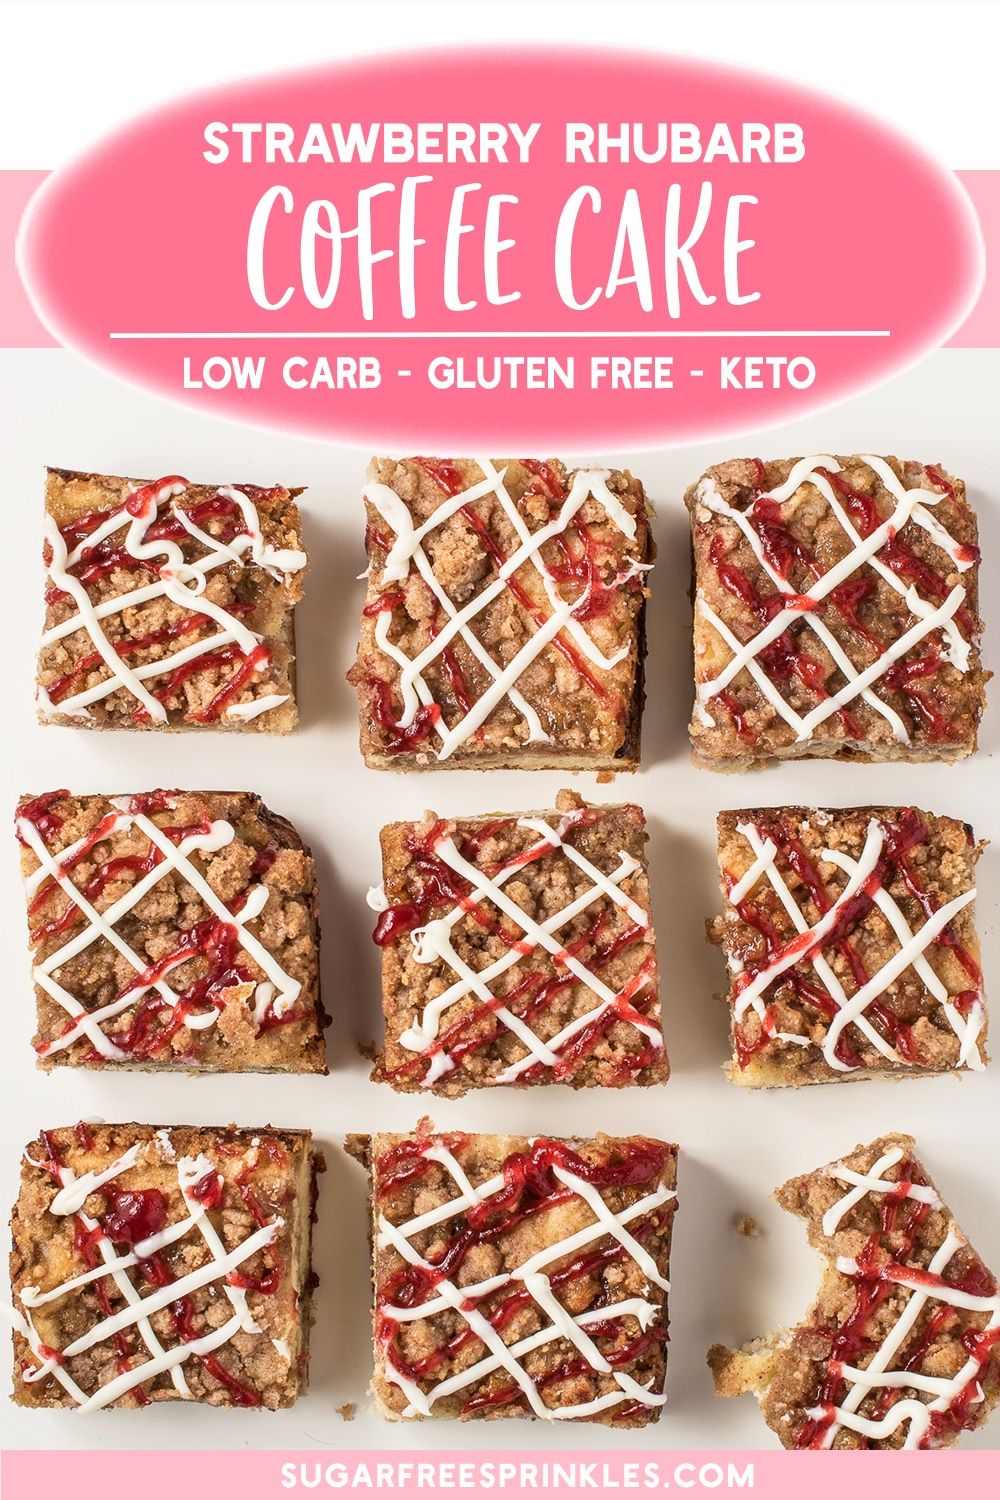 This strawberry rhubarb coffee cake is just as good as the classic recipe, only this low carb recipe has no sugar or gluten! A perfect low carb baking recipe for a simple snacking cake made with garden fresh rhubarb and strawberries. Crumbly, buttery and oh so good, and only 5 net carbs per slice. If it fits your macros, it\'s a great little keto dessert recipe too.